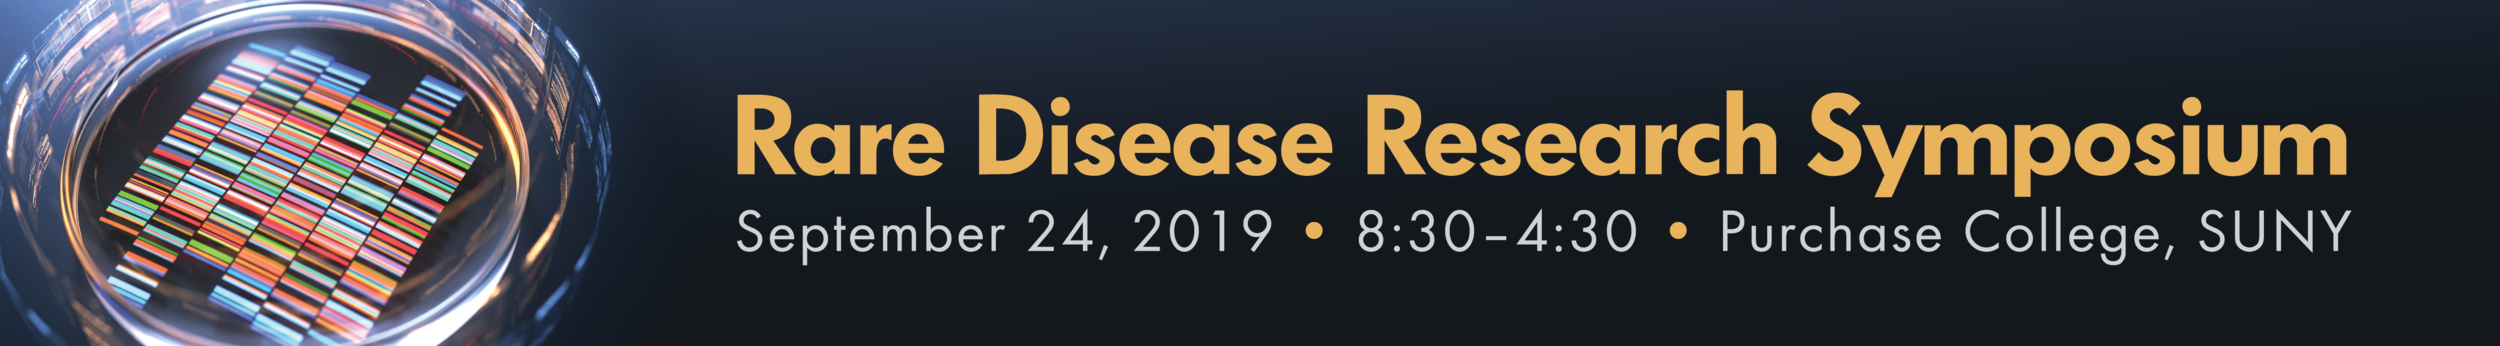 Rare Disease Symposium 2019 Header_v1 (1).png